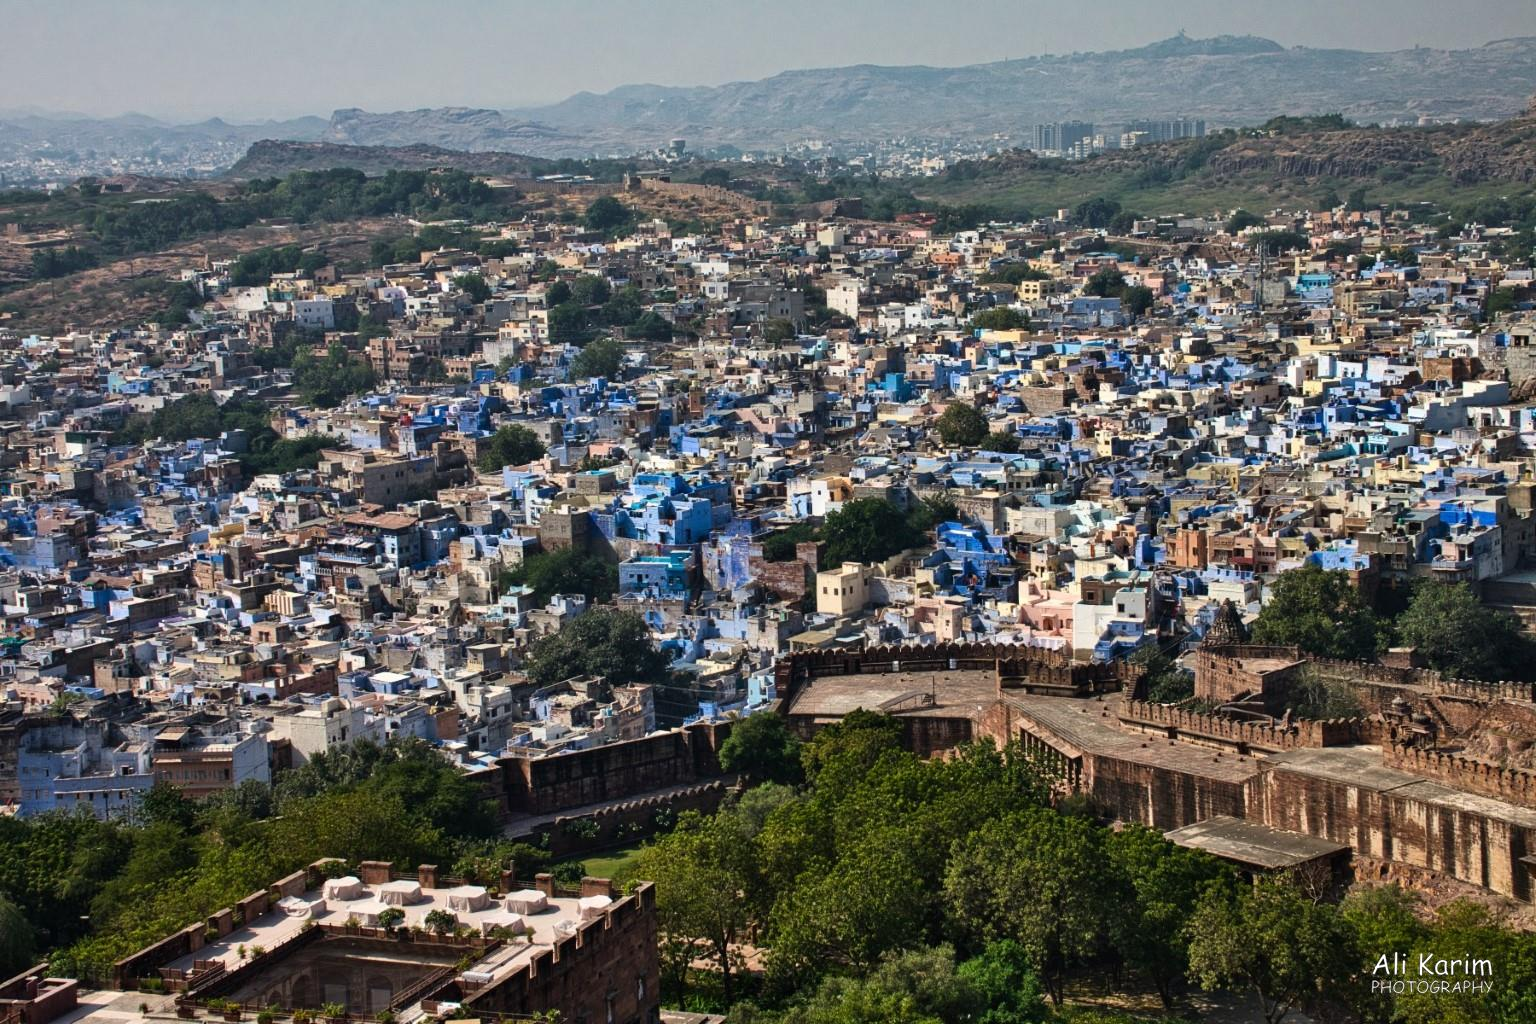 Jodhpur, Rajasthan Good view of the Old Blue City of Jodhpur from the Fort, and a view of the newer city of Jodhpur in the background